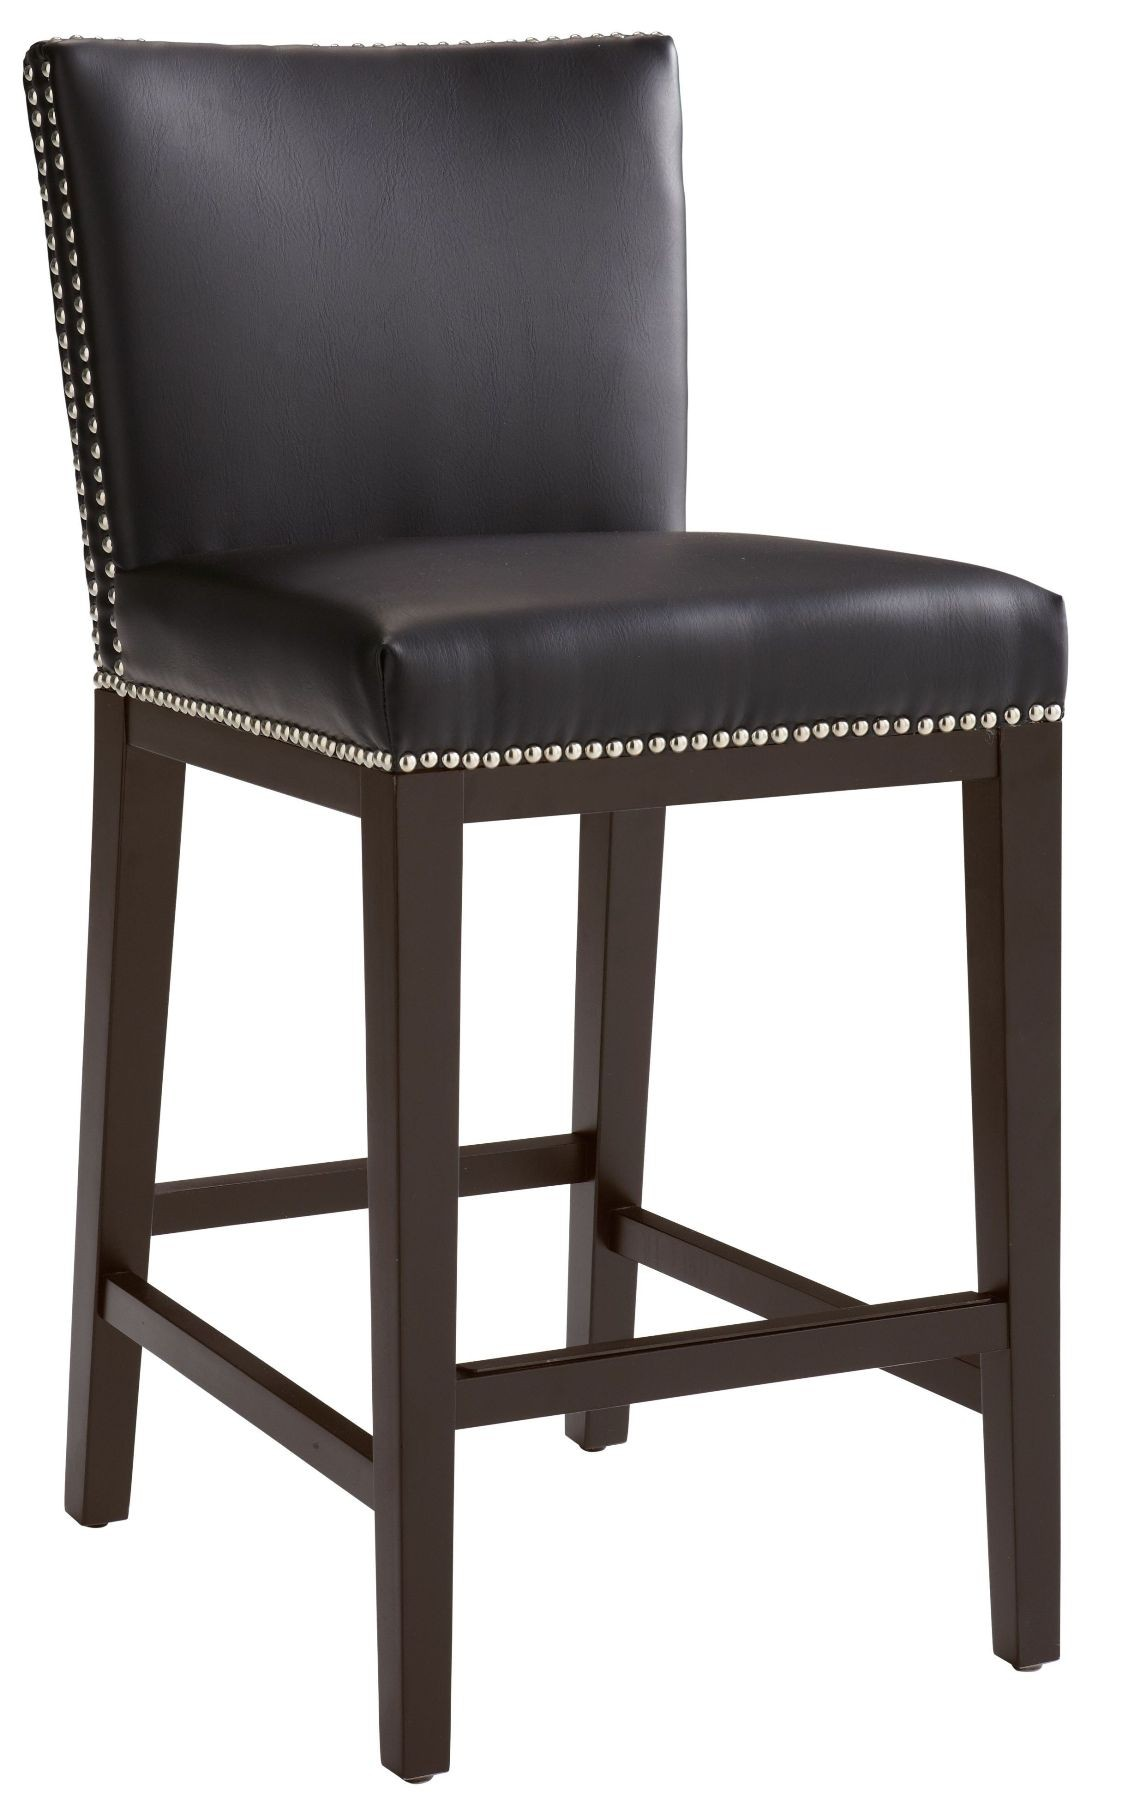 Vintage Brown Leather Counter Stool From Sunpan 65871